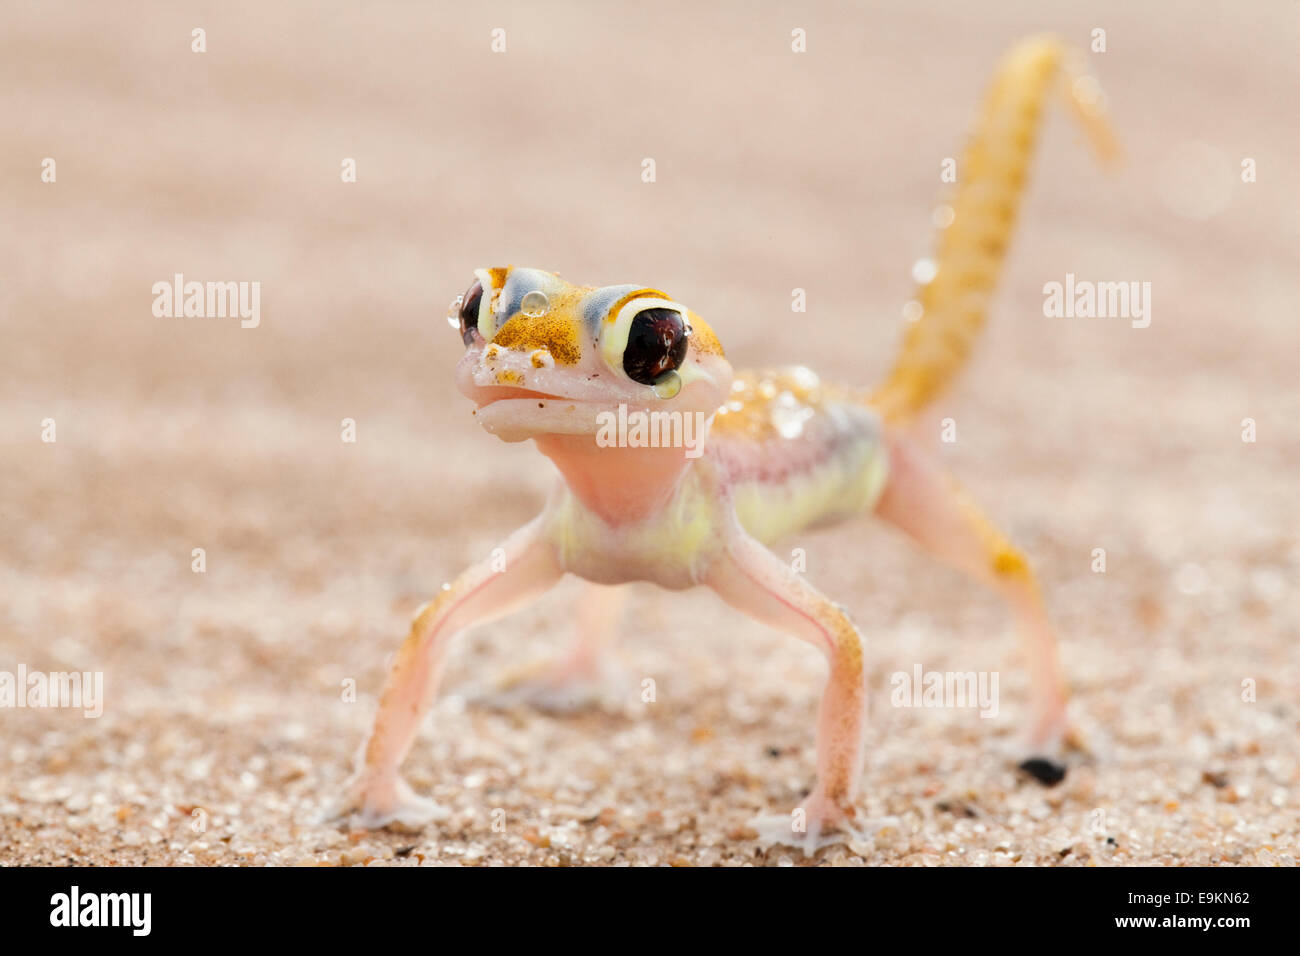 Webfooted gecko, Palmatogecko rangei, licking dew from face, Namib Desert, Namibia Stock Photo